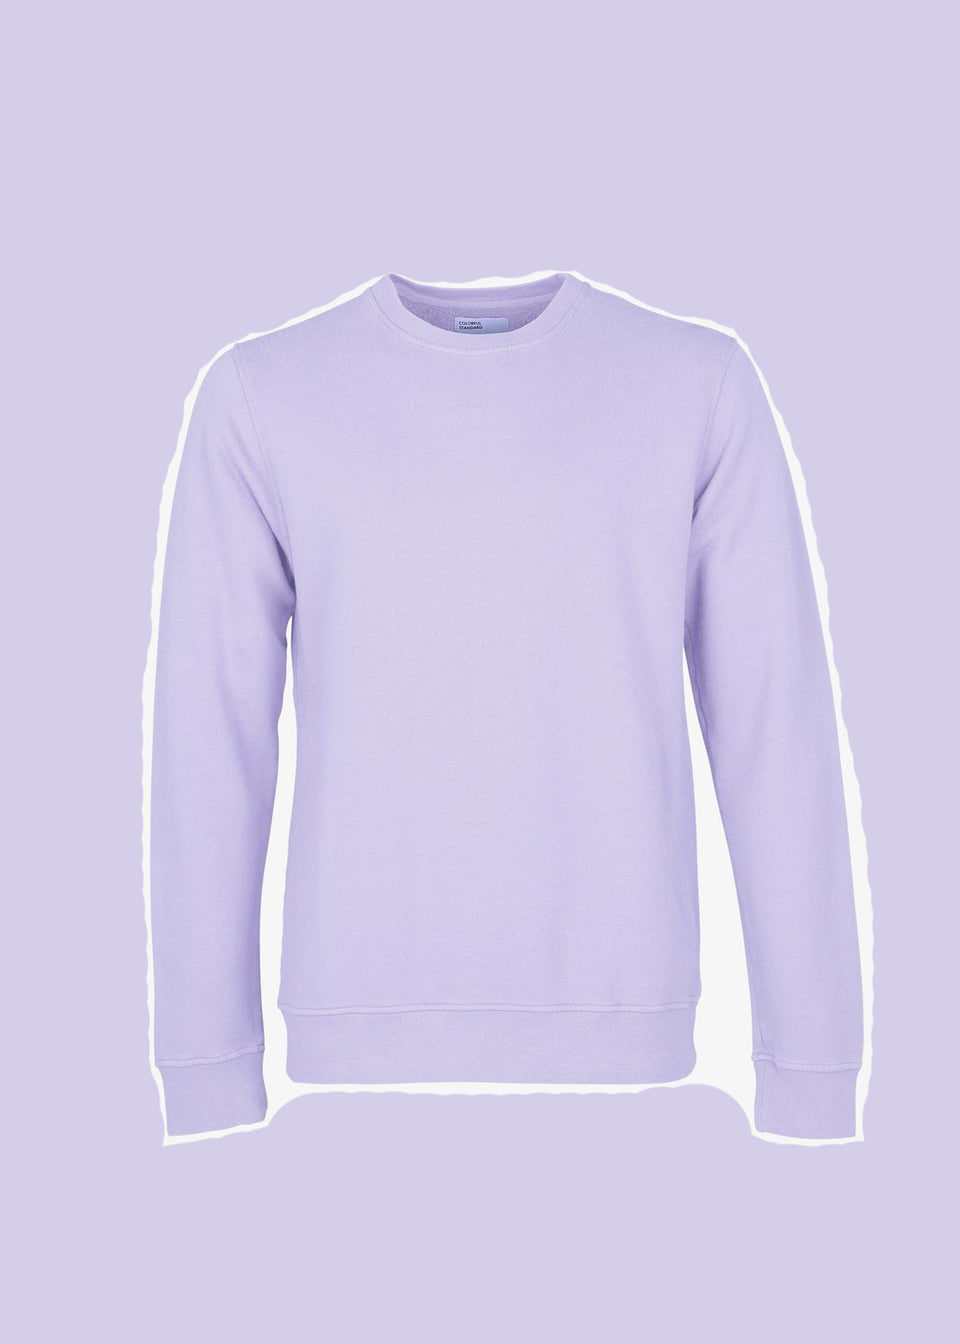 COLORFUL STANDARD • Sweat Crewneck Lavande